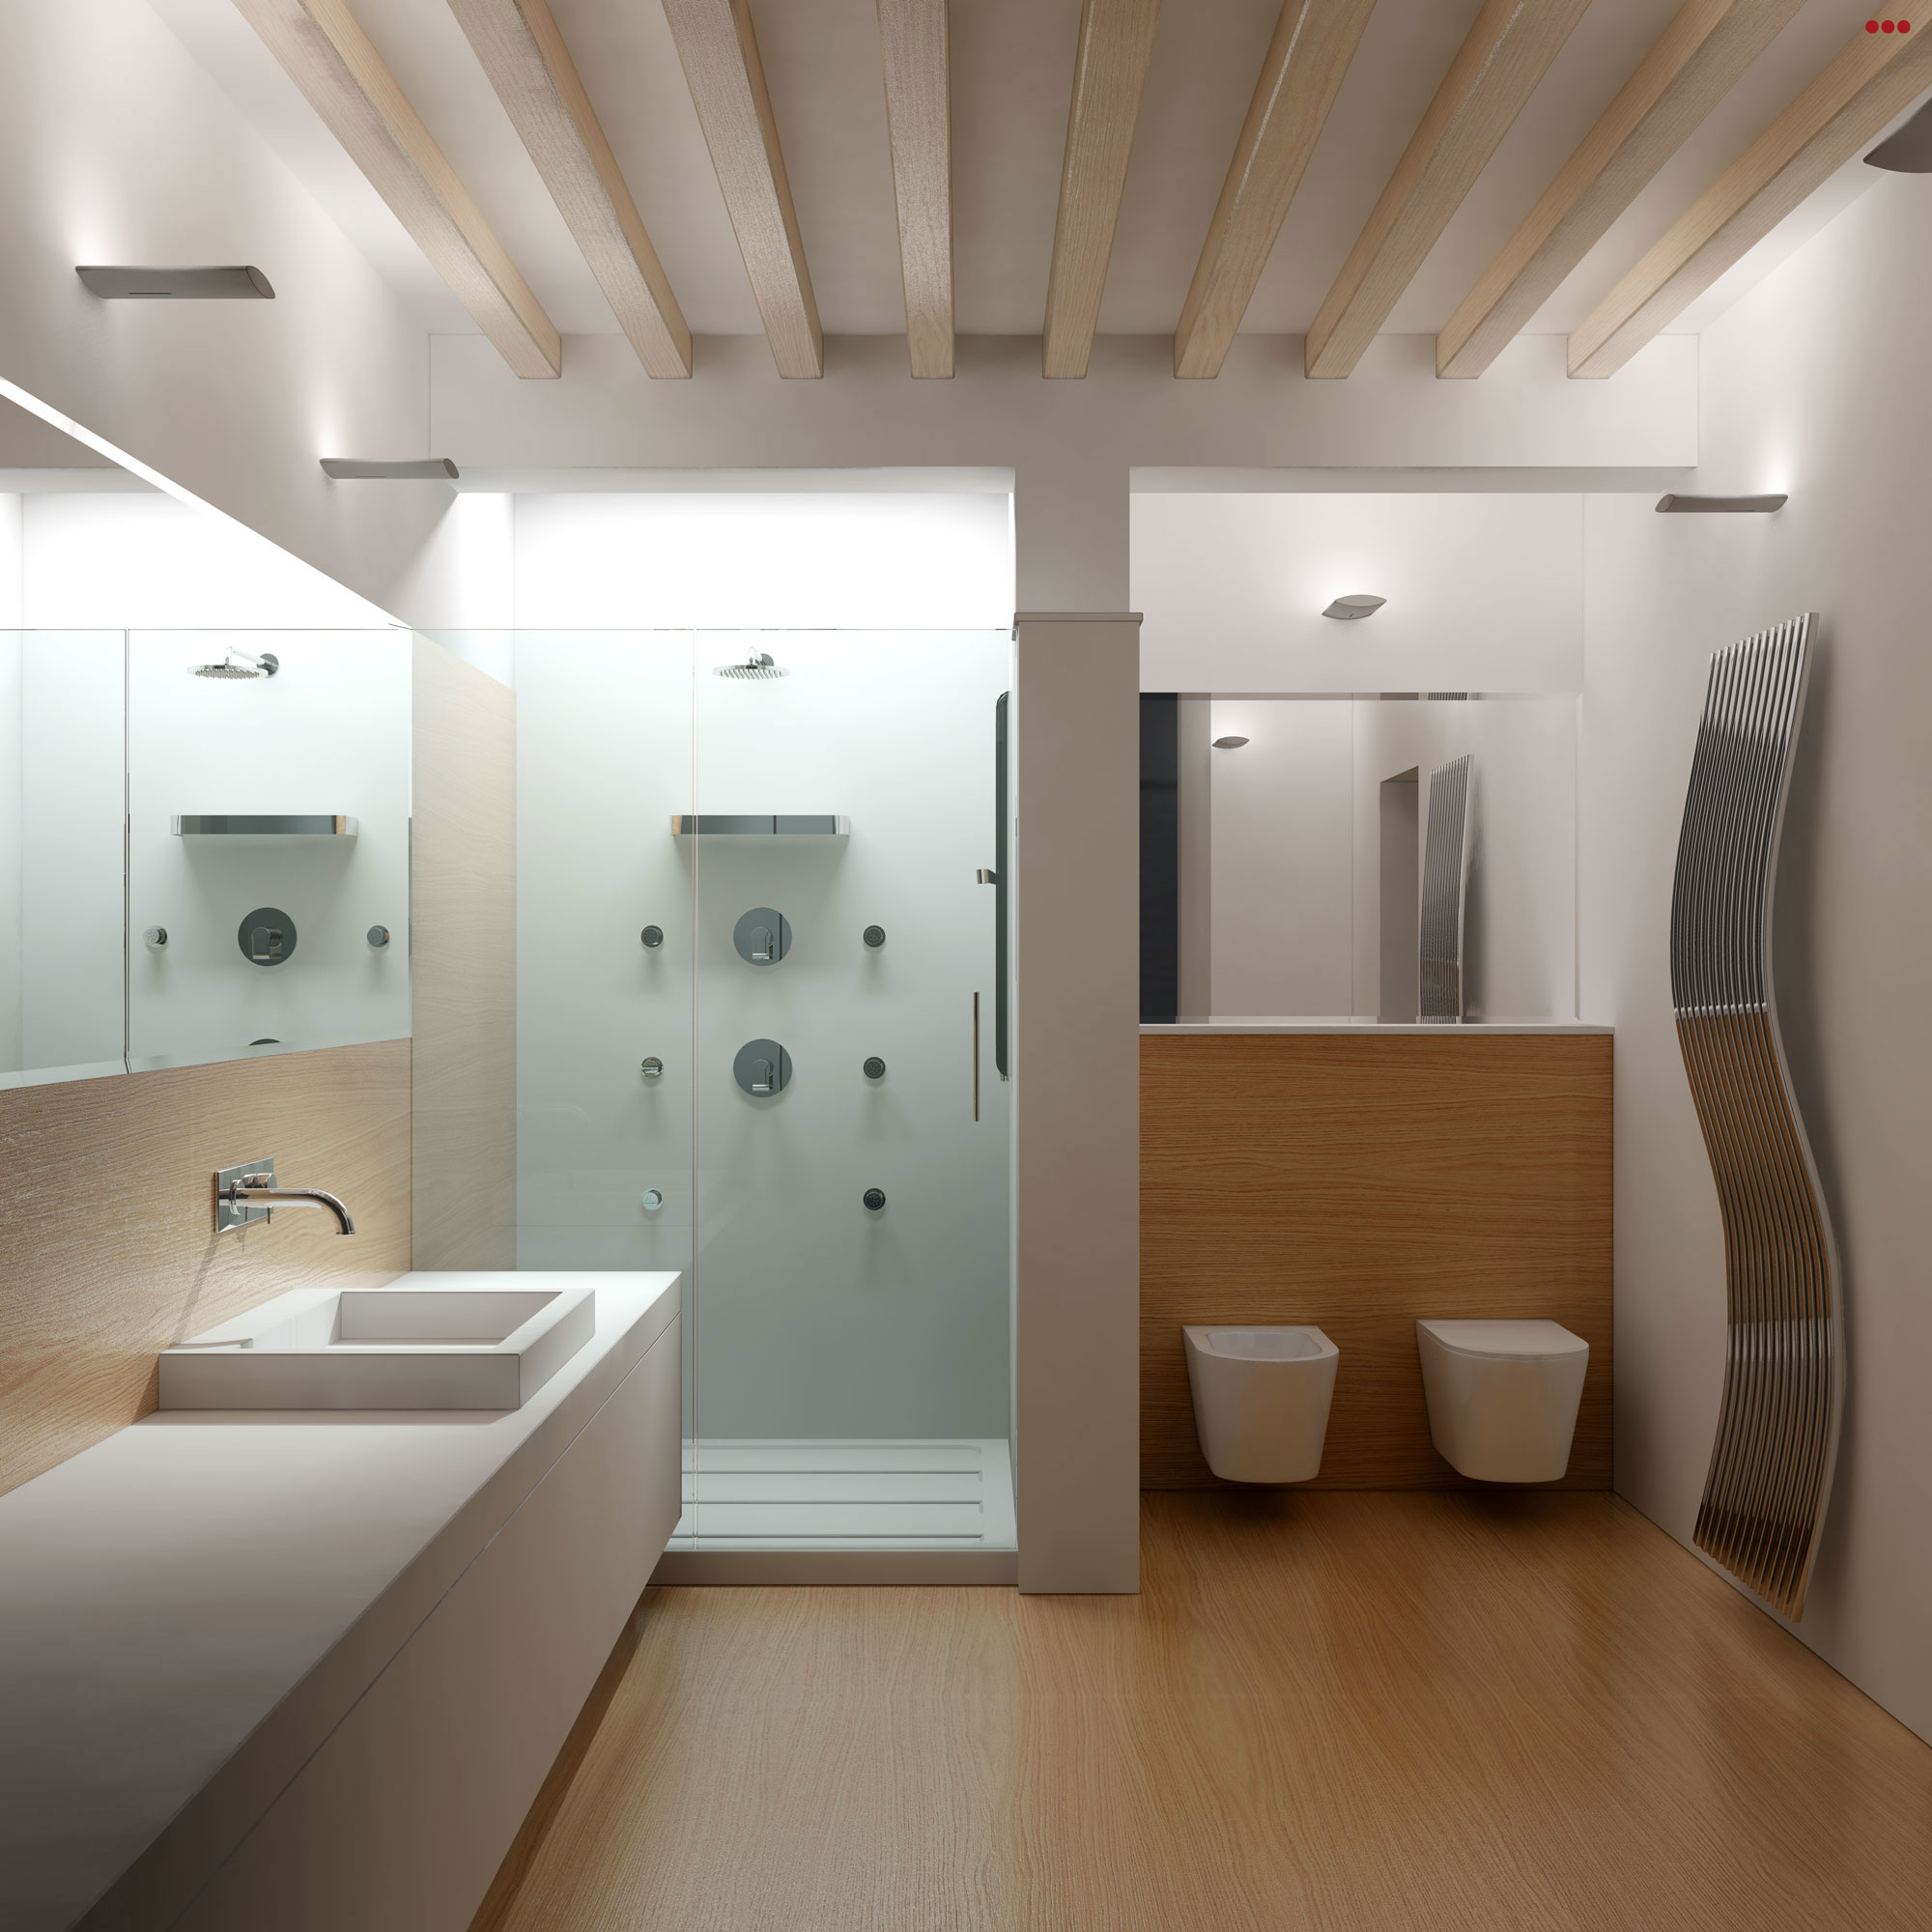 Arredo bagni 3d studio bartolini grafica e rendering 3d for Interni design studio